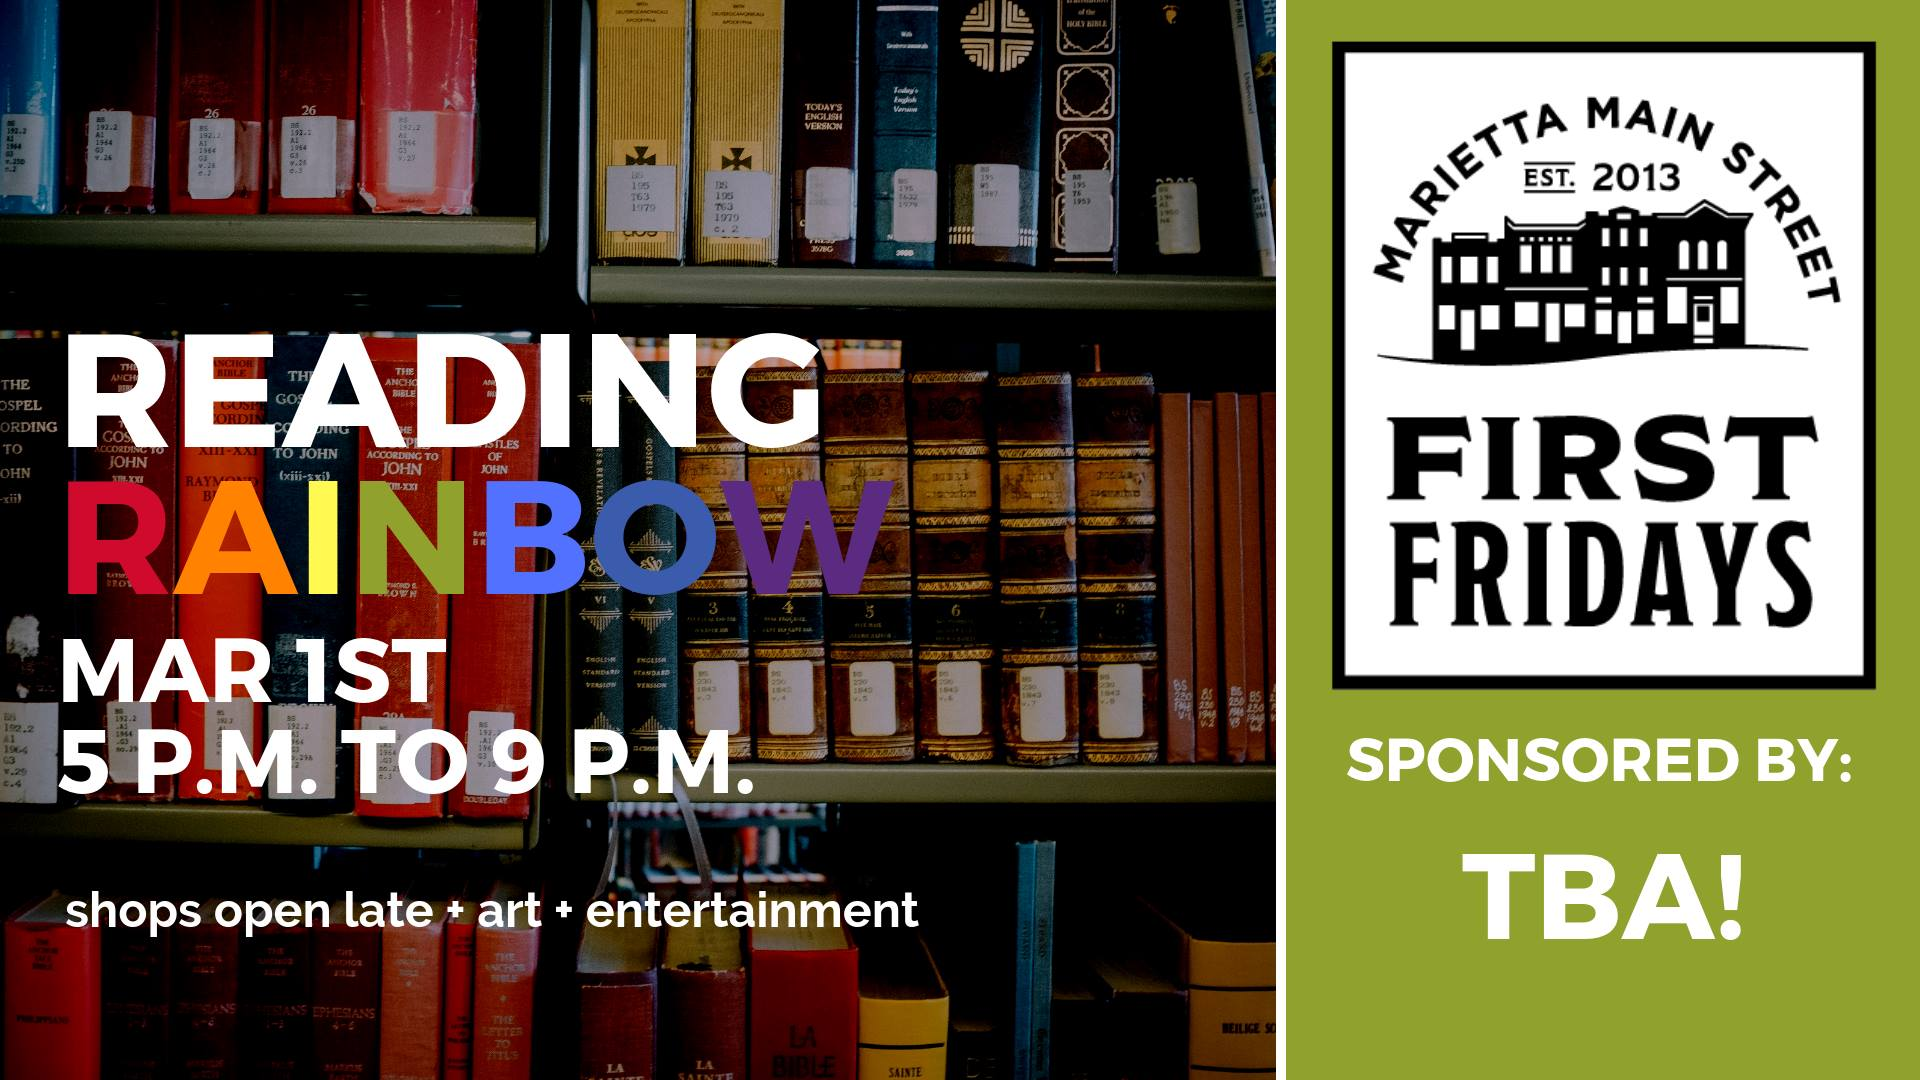 First Friday: Reading Rainbow